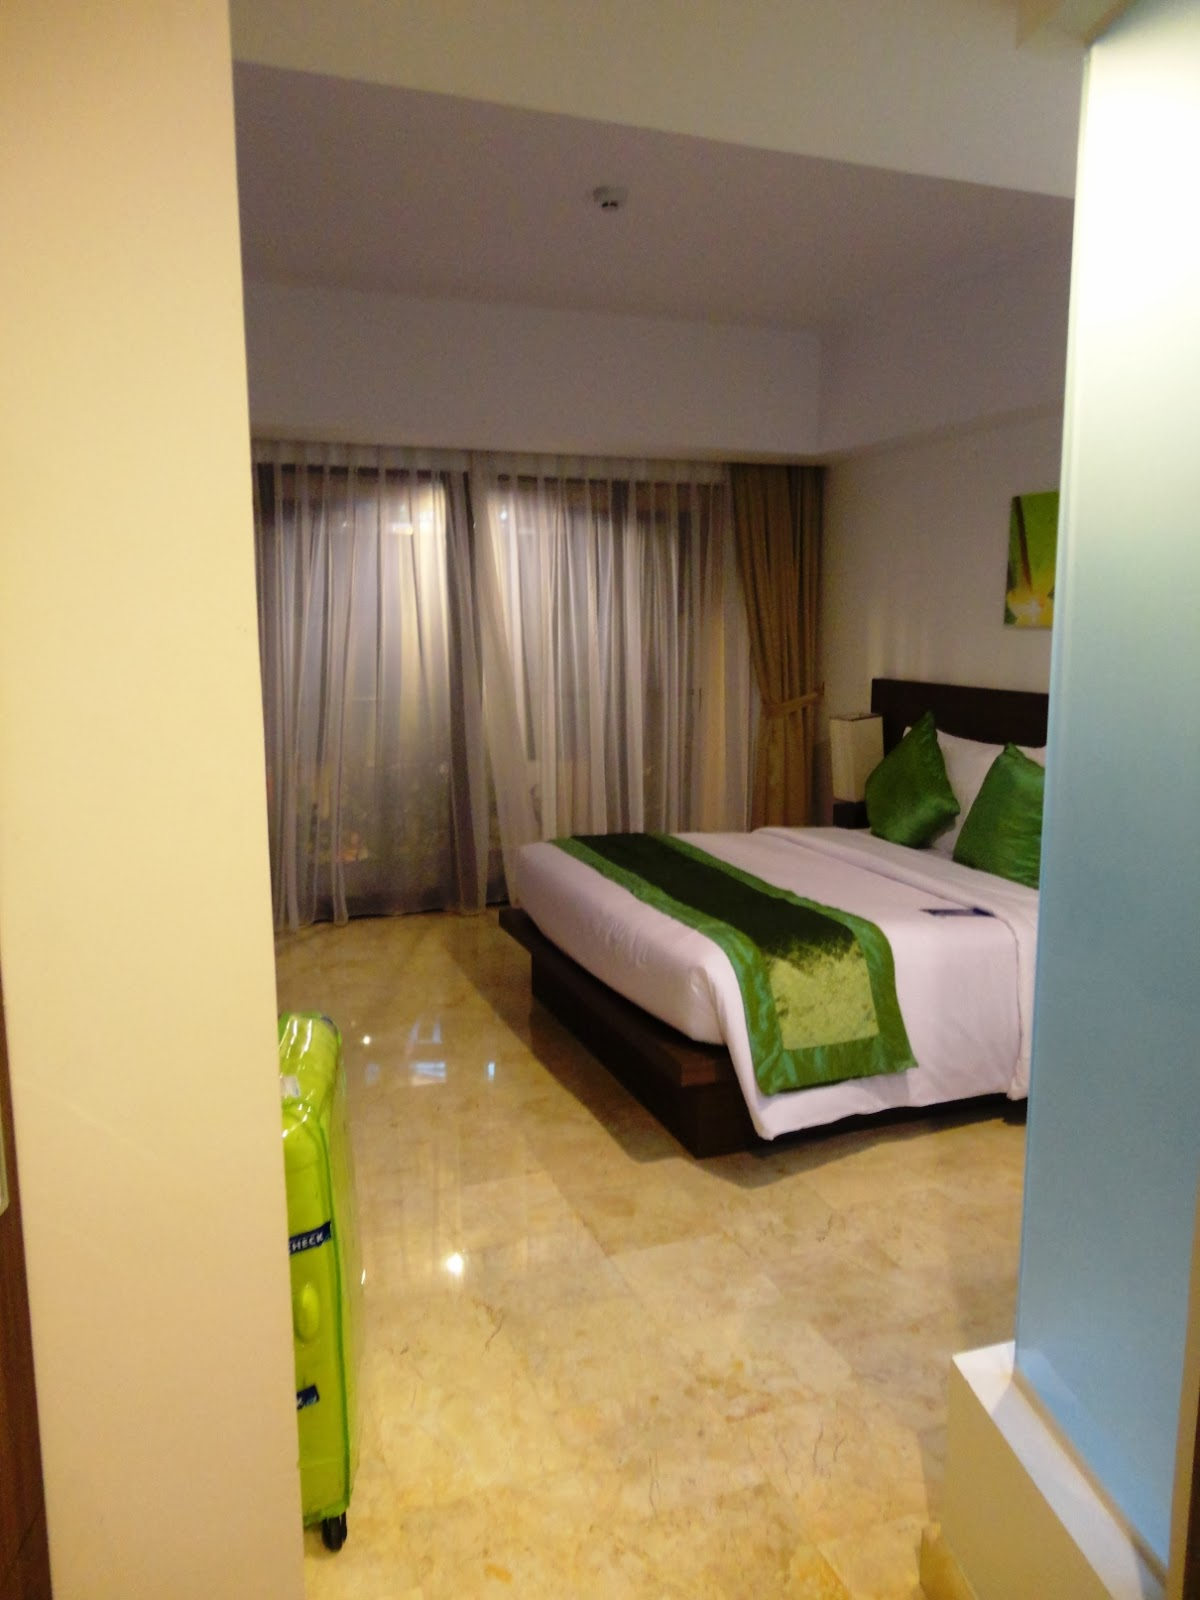 Bali Getaway Culinary Park Regis Hotel Review Pink And Undecided Voucher Kuta Room Was Basic But Spacious Clean